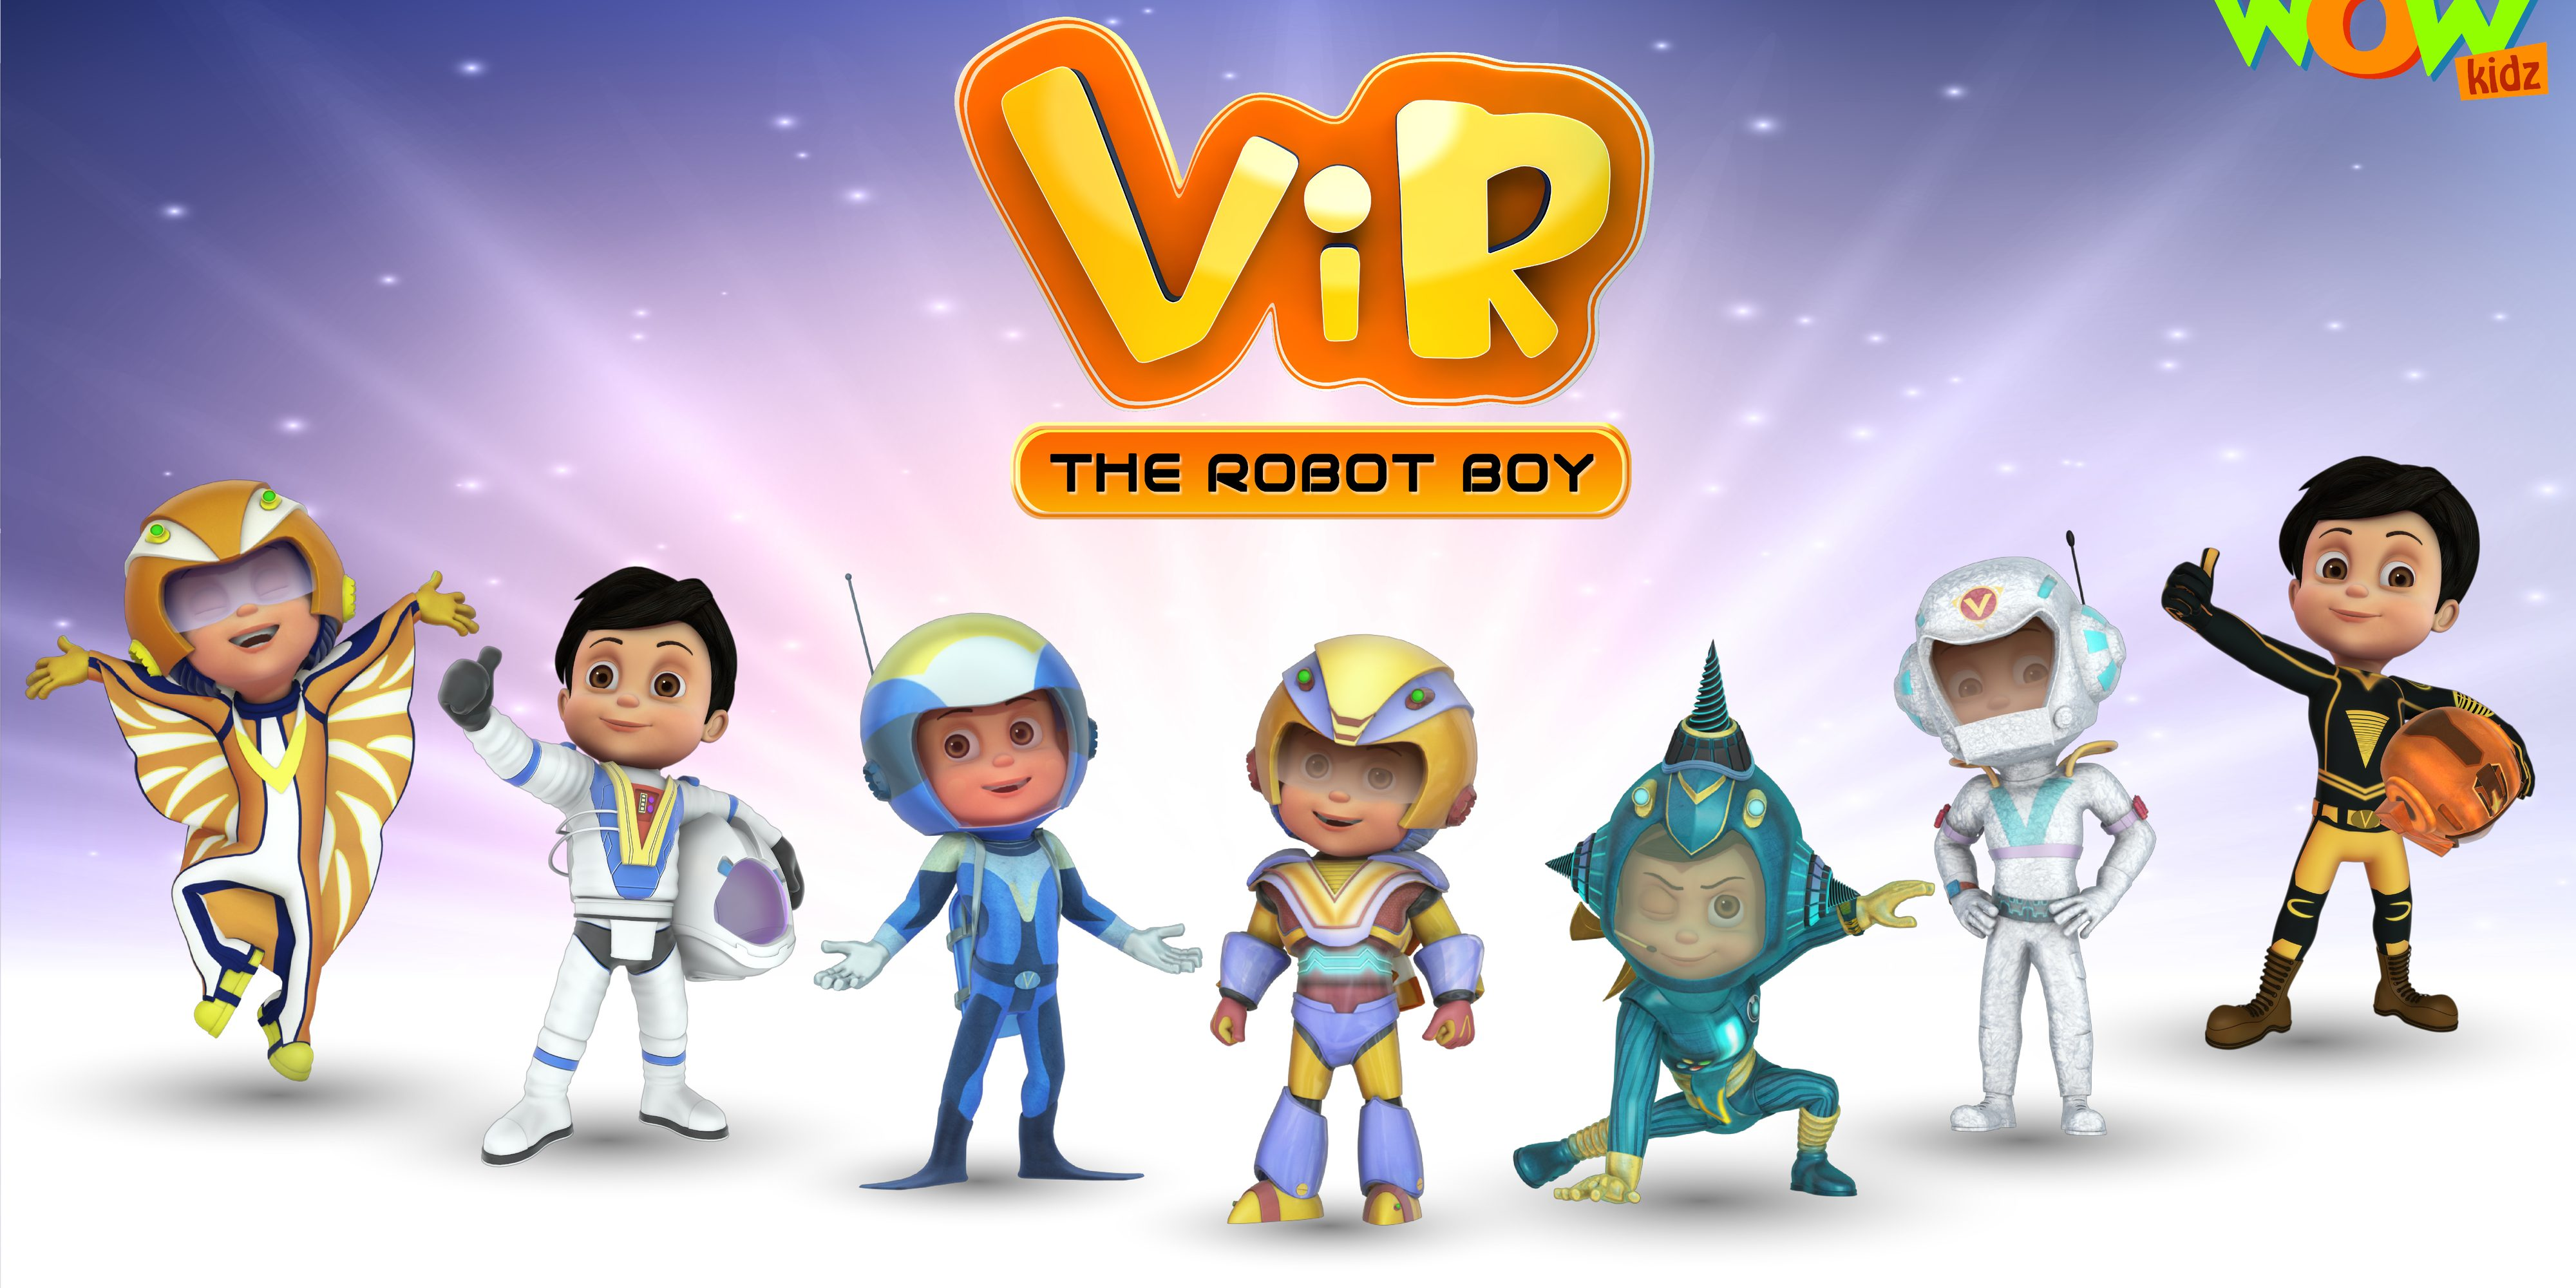 Download Sketsa Gambar Vir The Robot Boy Sketsa Gambar